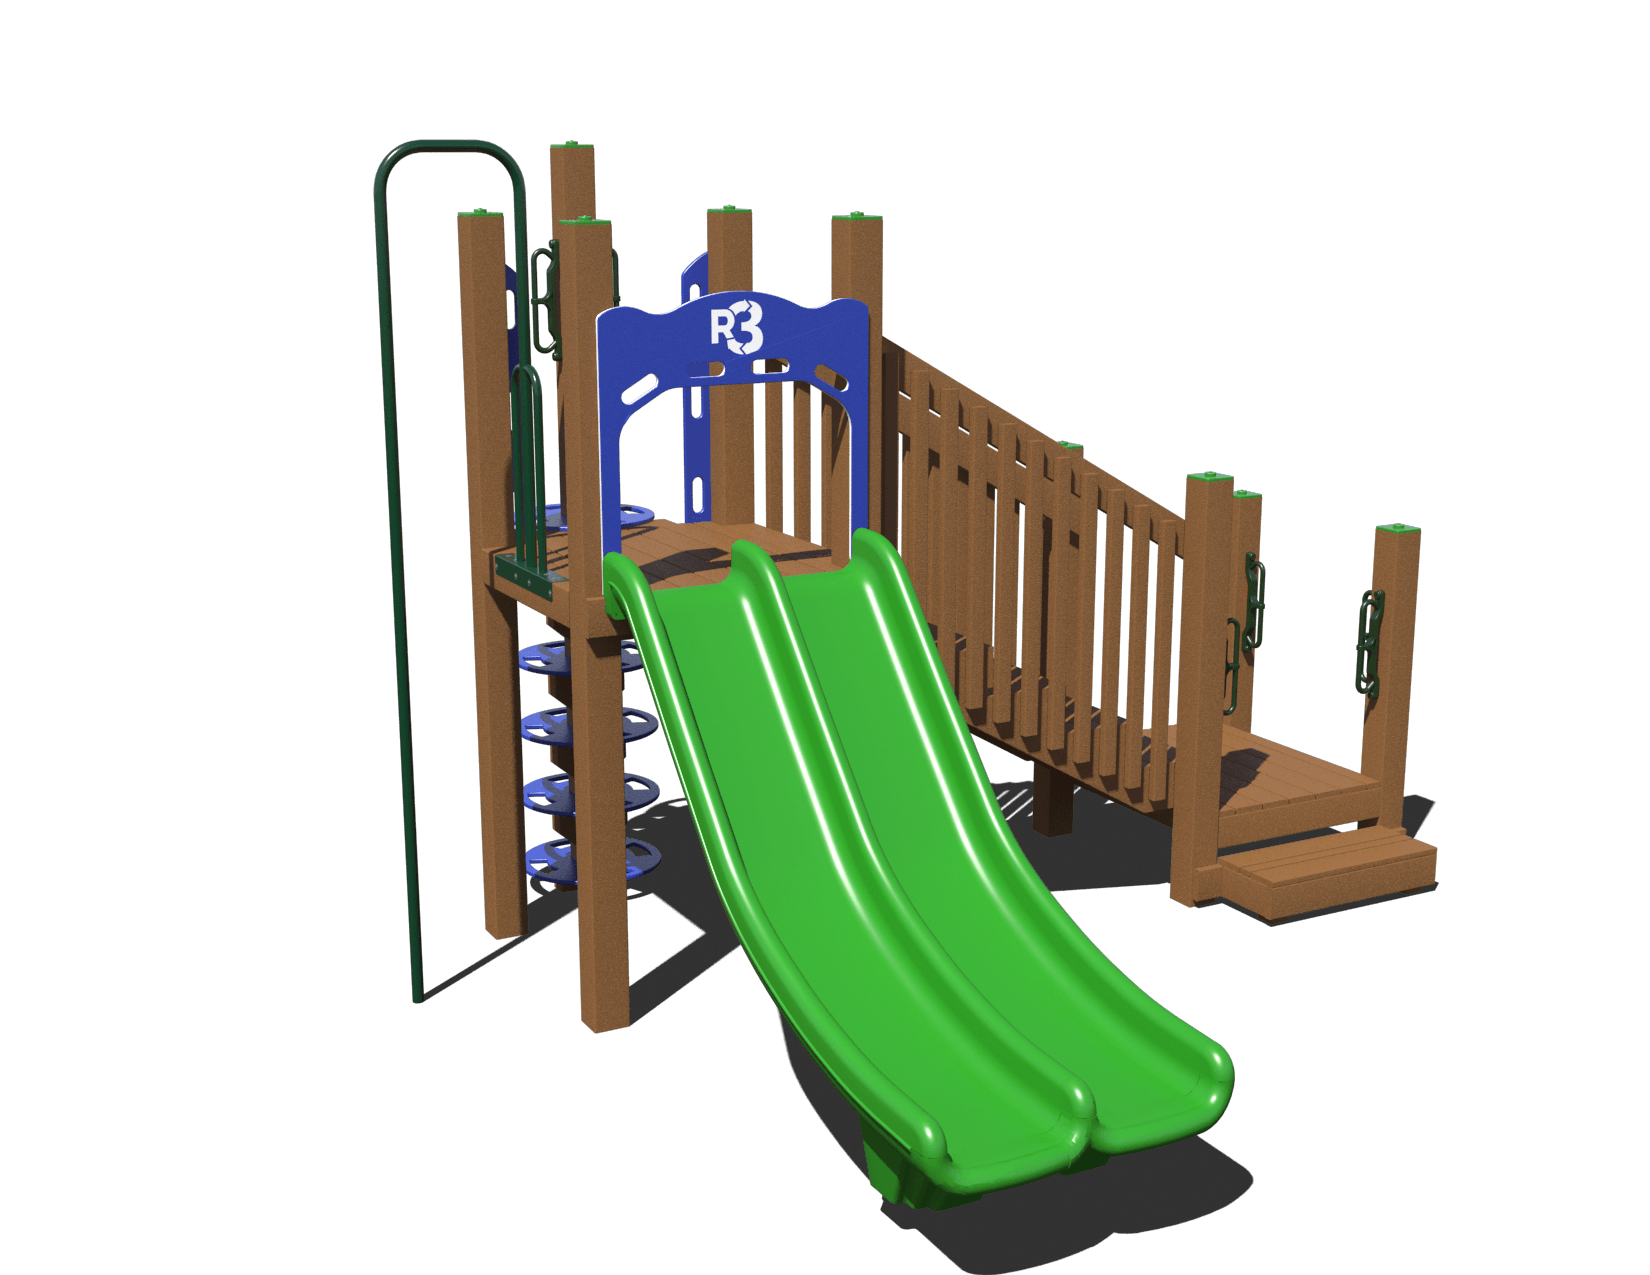 step to fun play system pro playgrounds the play. Black Bedroom Furniture Sets. Home Design Ideas